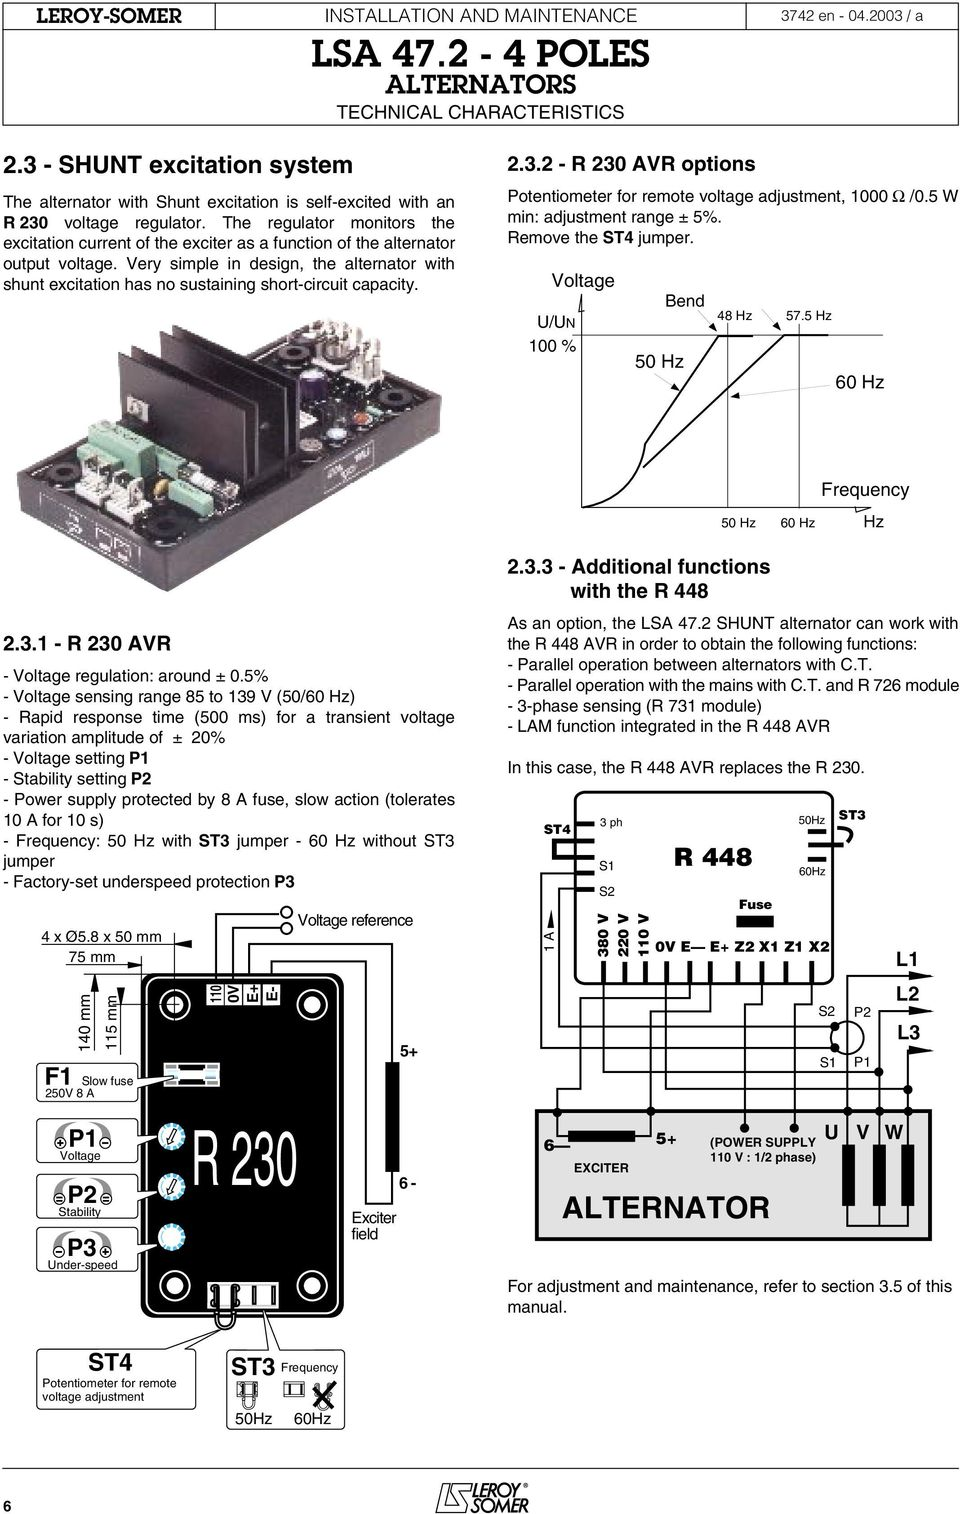 Users Guide And Maintenance Manual Leroy Somer Alternators Lsa For Case 448 Wiring Diagram Very Simple In Design The Alternator With Shunt Excitation Has No Sustaining Short Circuit